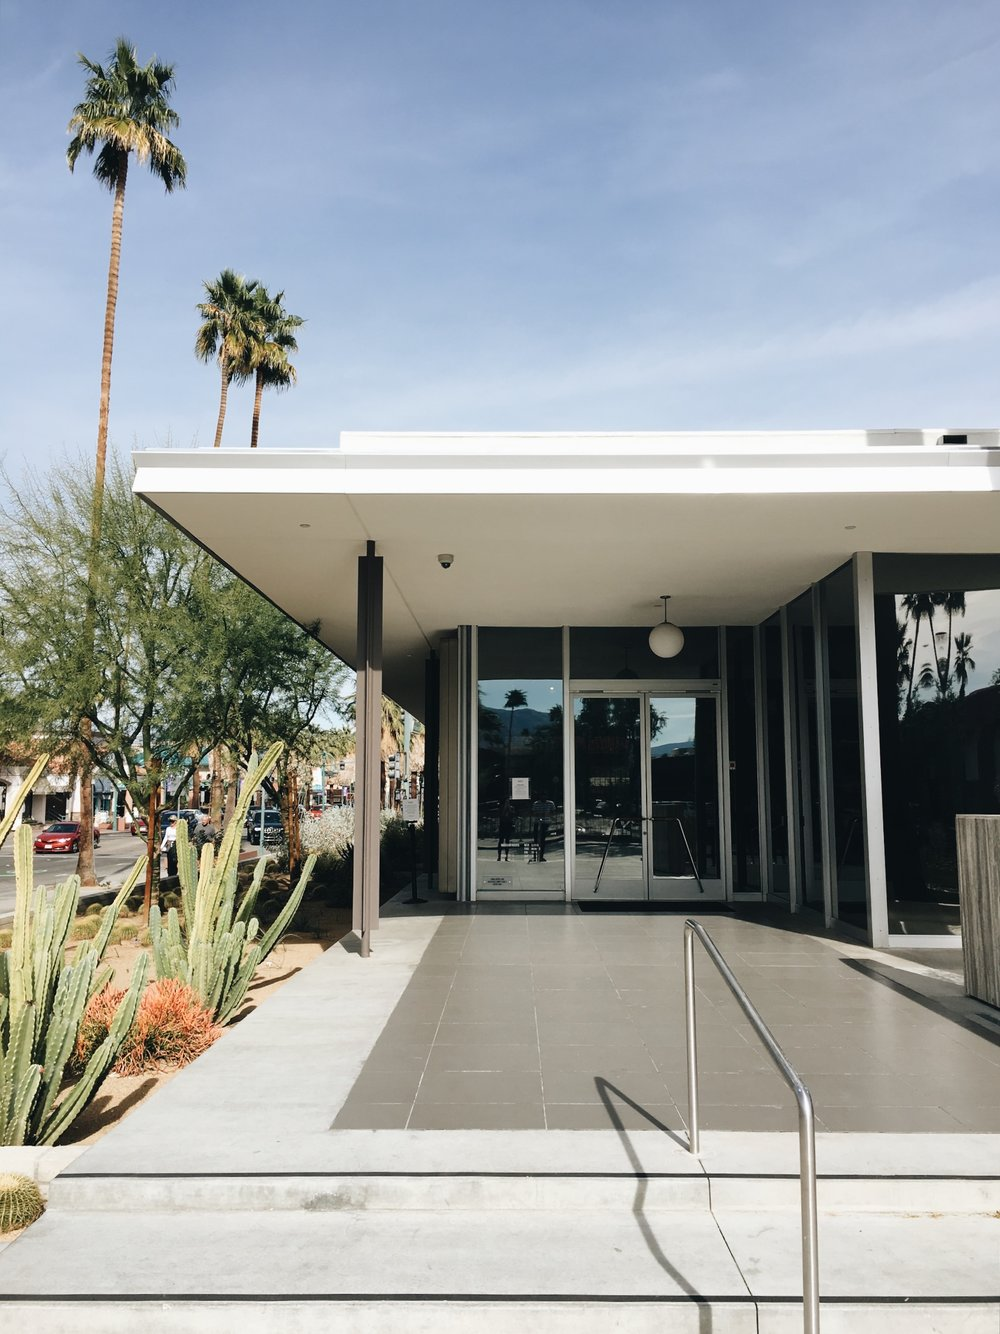 68ce8-seesoomuch_palm_springs_museum_architecture.jpg